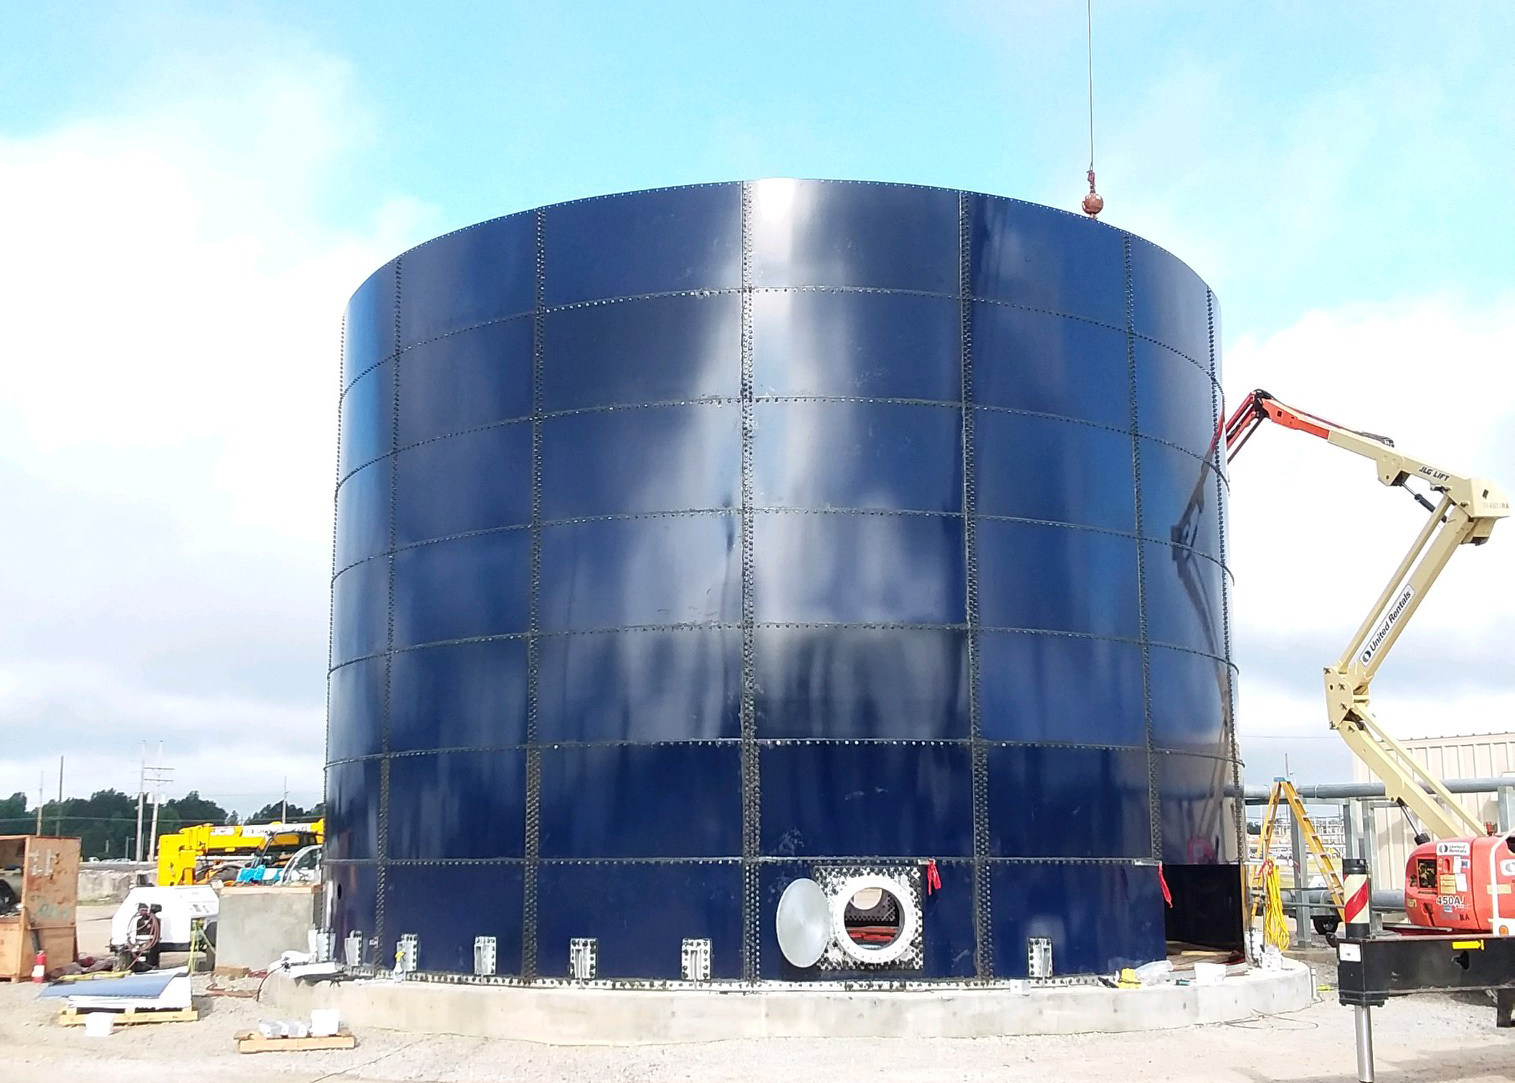 A crane installing of 7 rings on a blue glass fused-to-steel storage tank